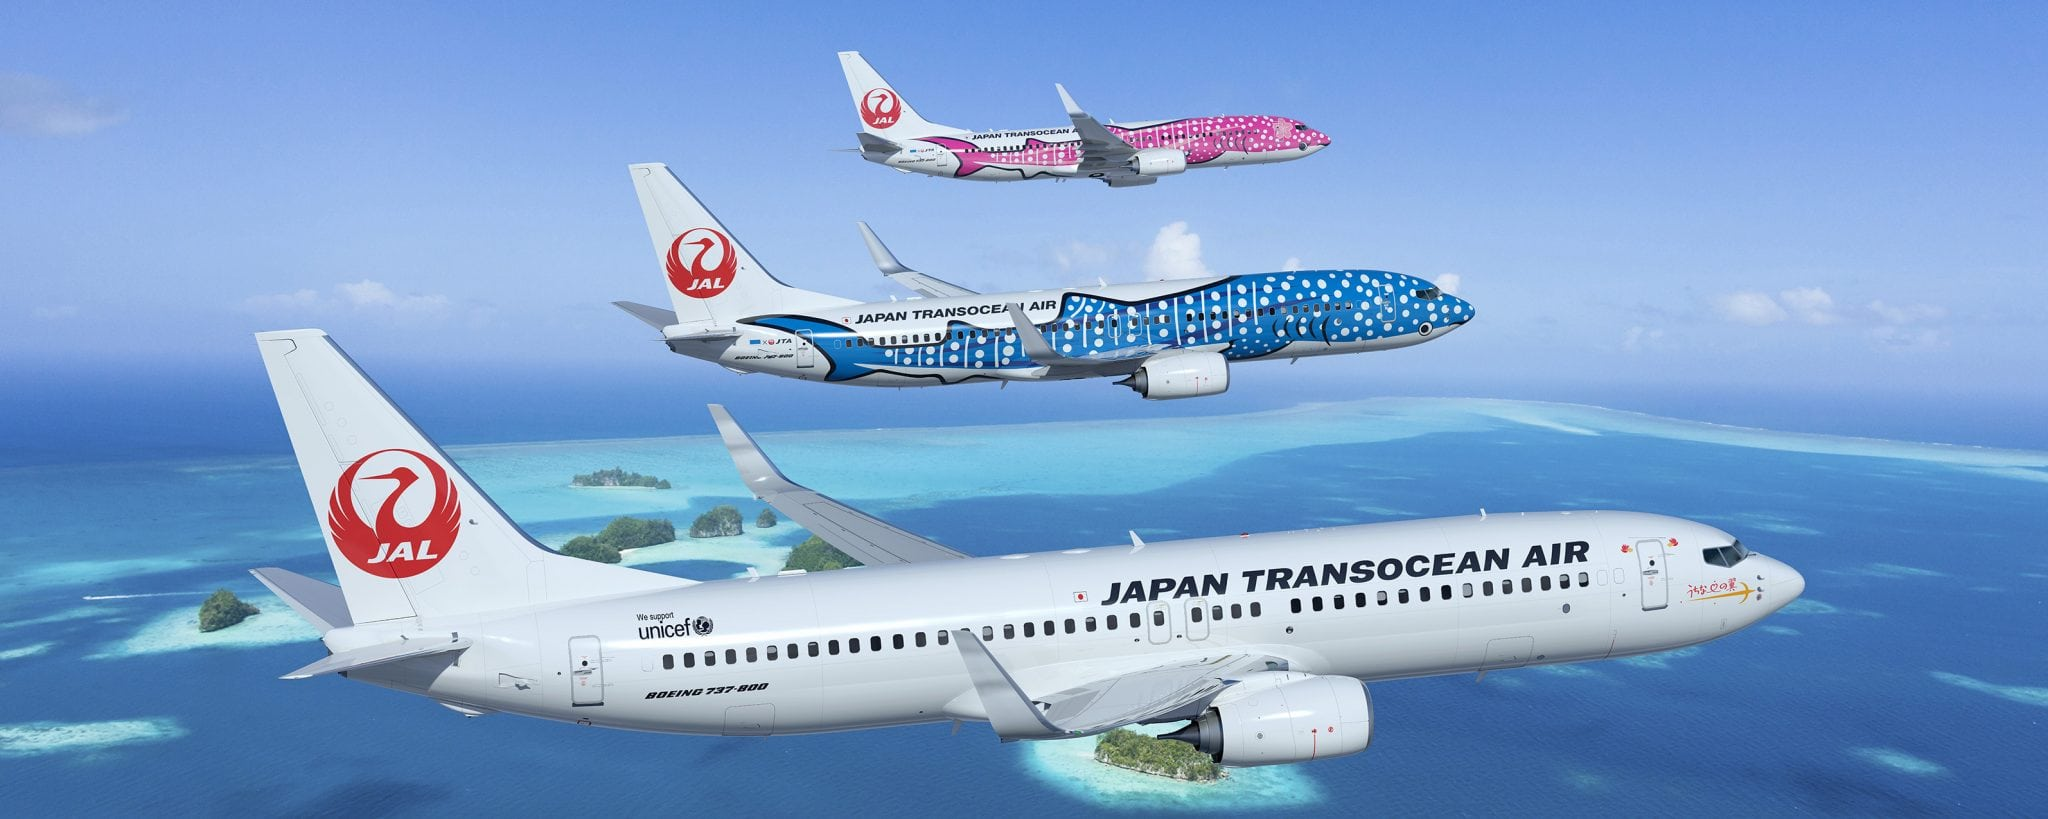 Three 737-800s in Japan Transocean Air's livery.